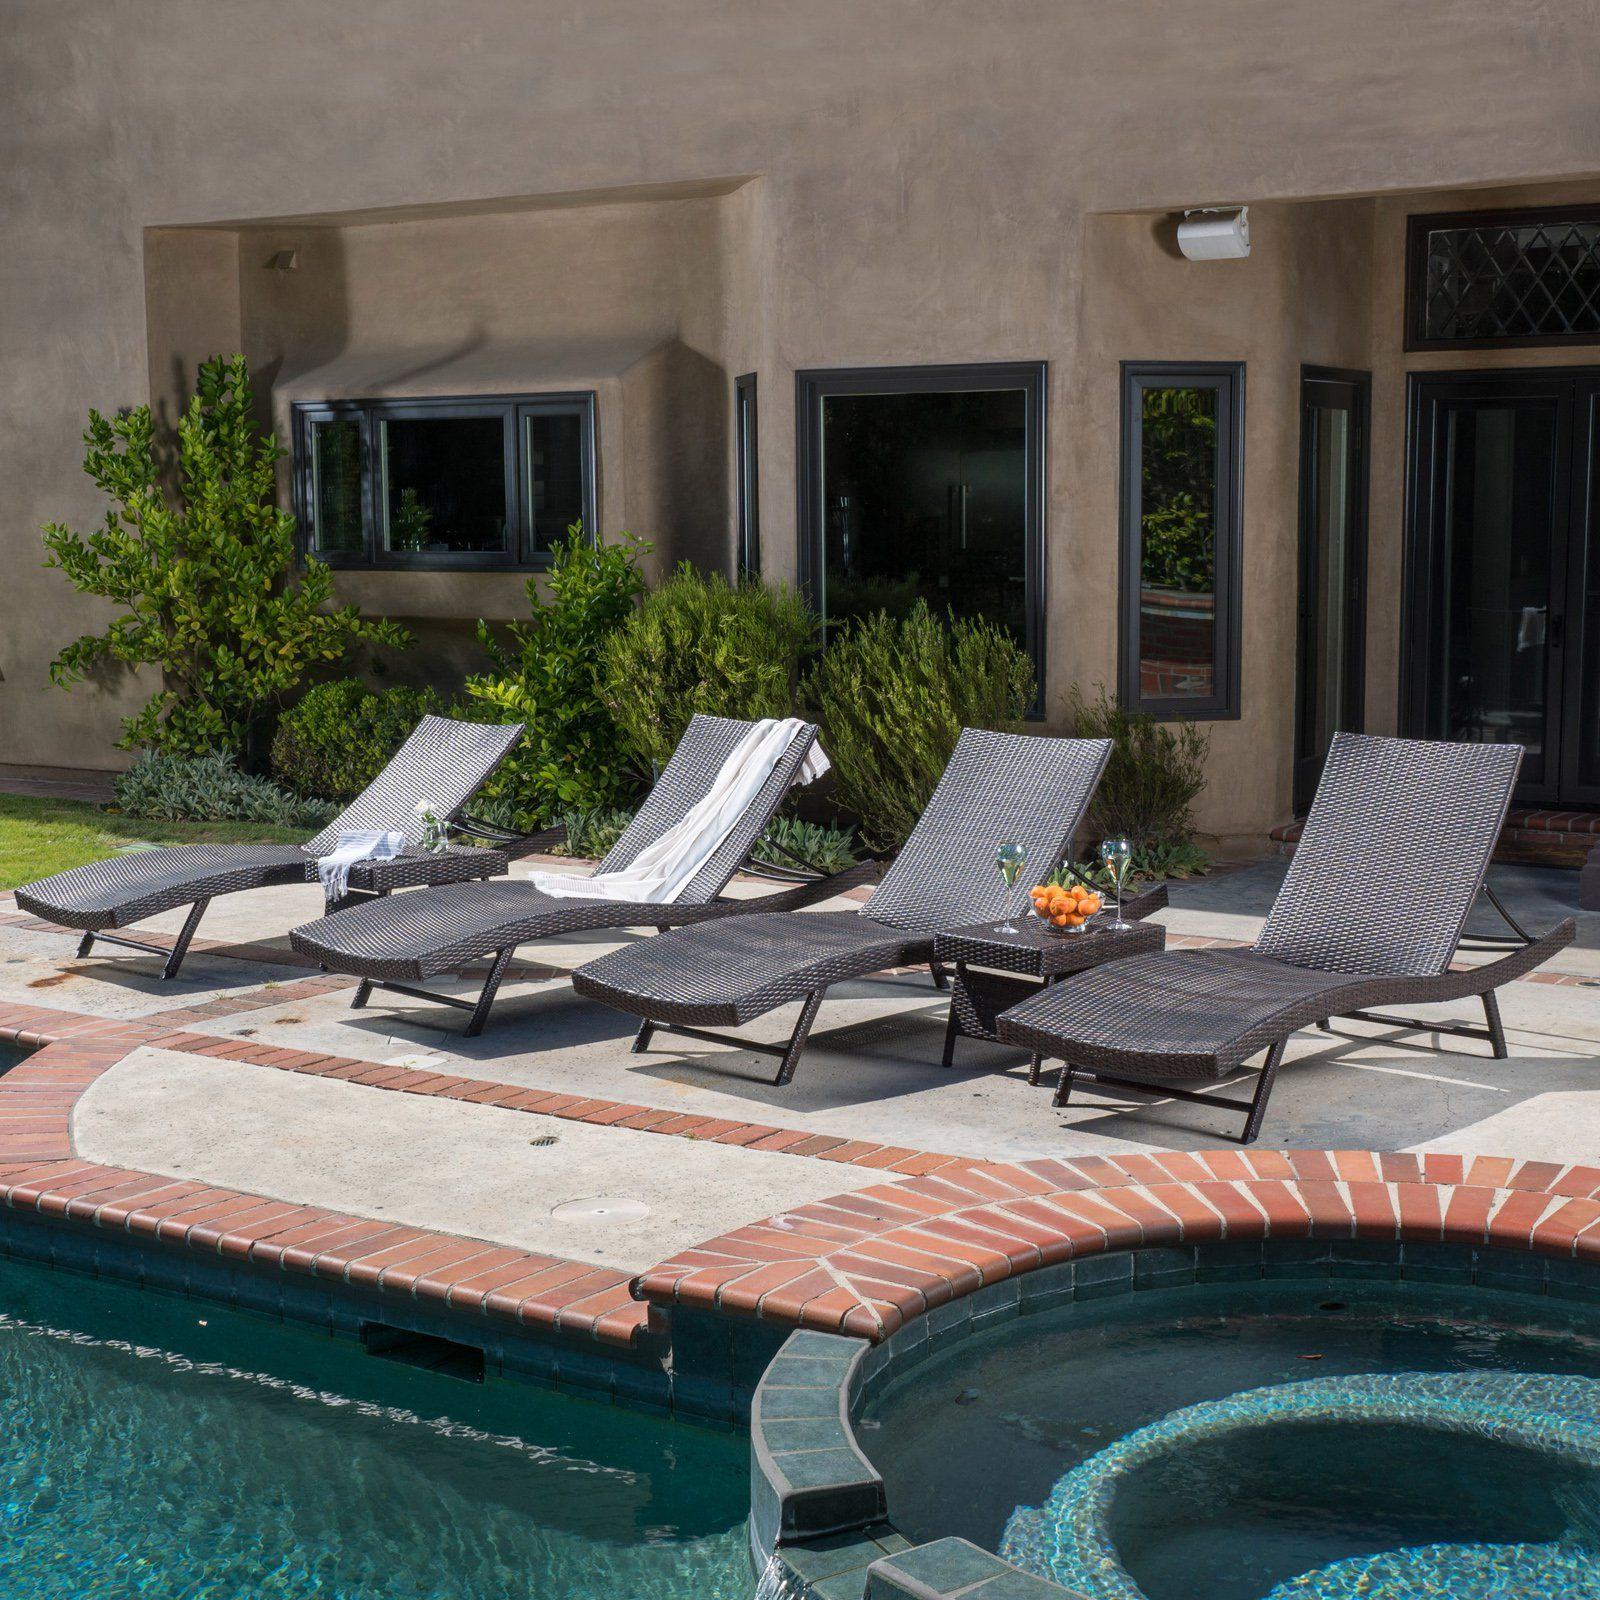 Outdoor Best Selling Home Decor Kauai Wicker 6 Piece Chaise